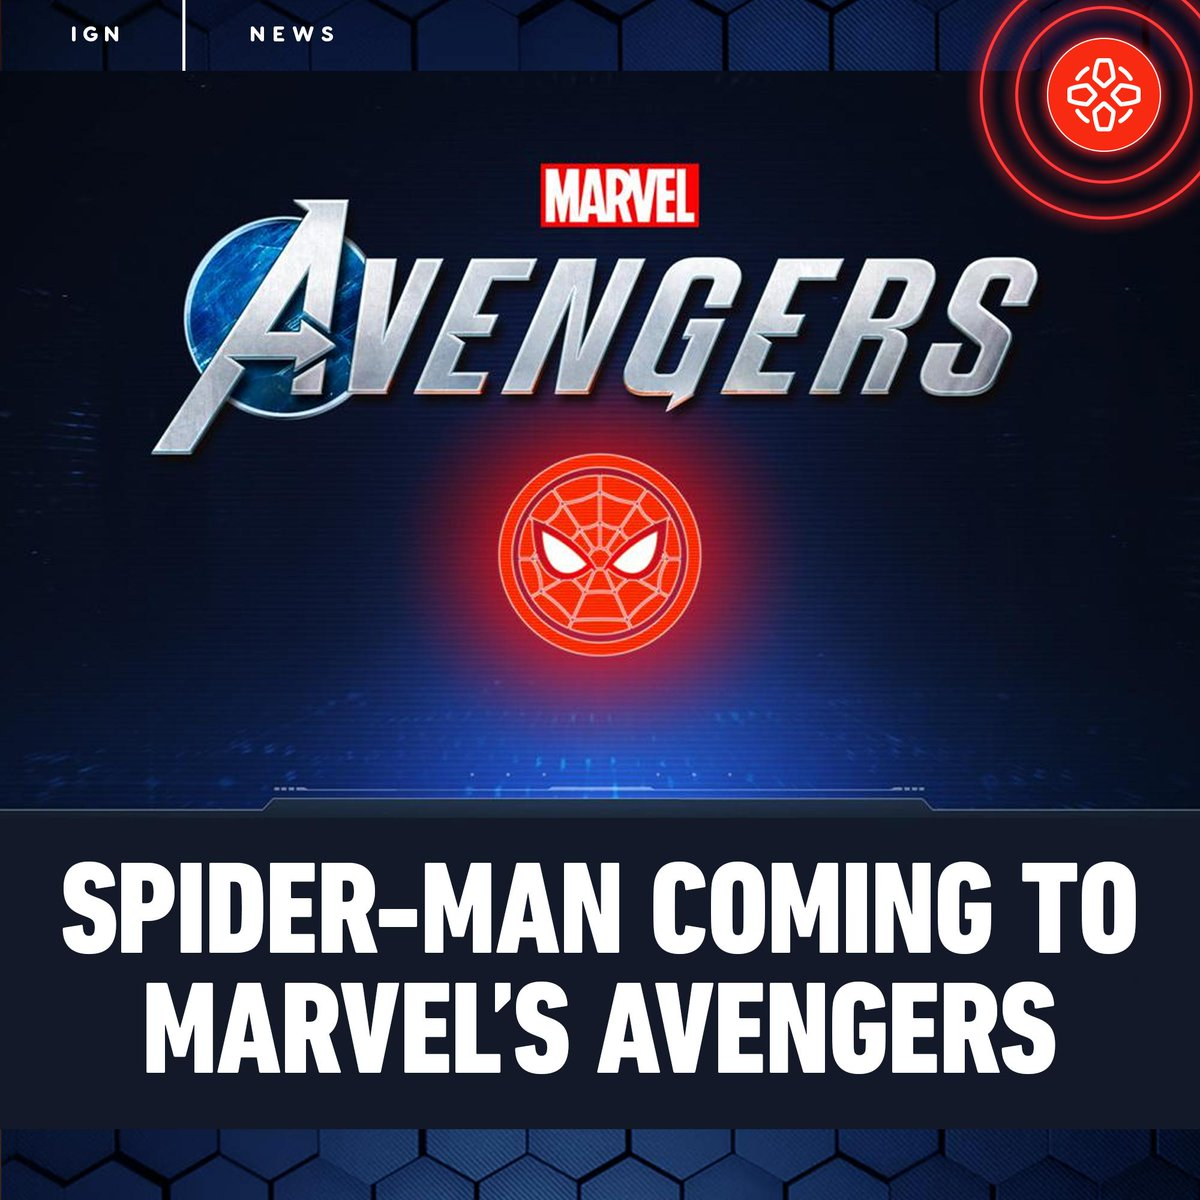 Sony revealed that Spider-Man is coming to Marvel's Avengers as a free post-launch playable character exclusively for PlayStation consoles in early 2021.